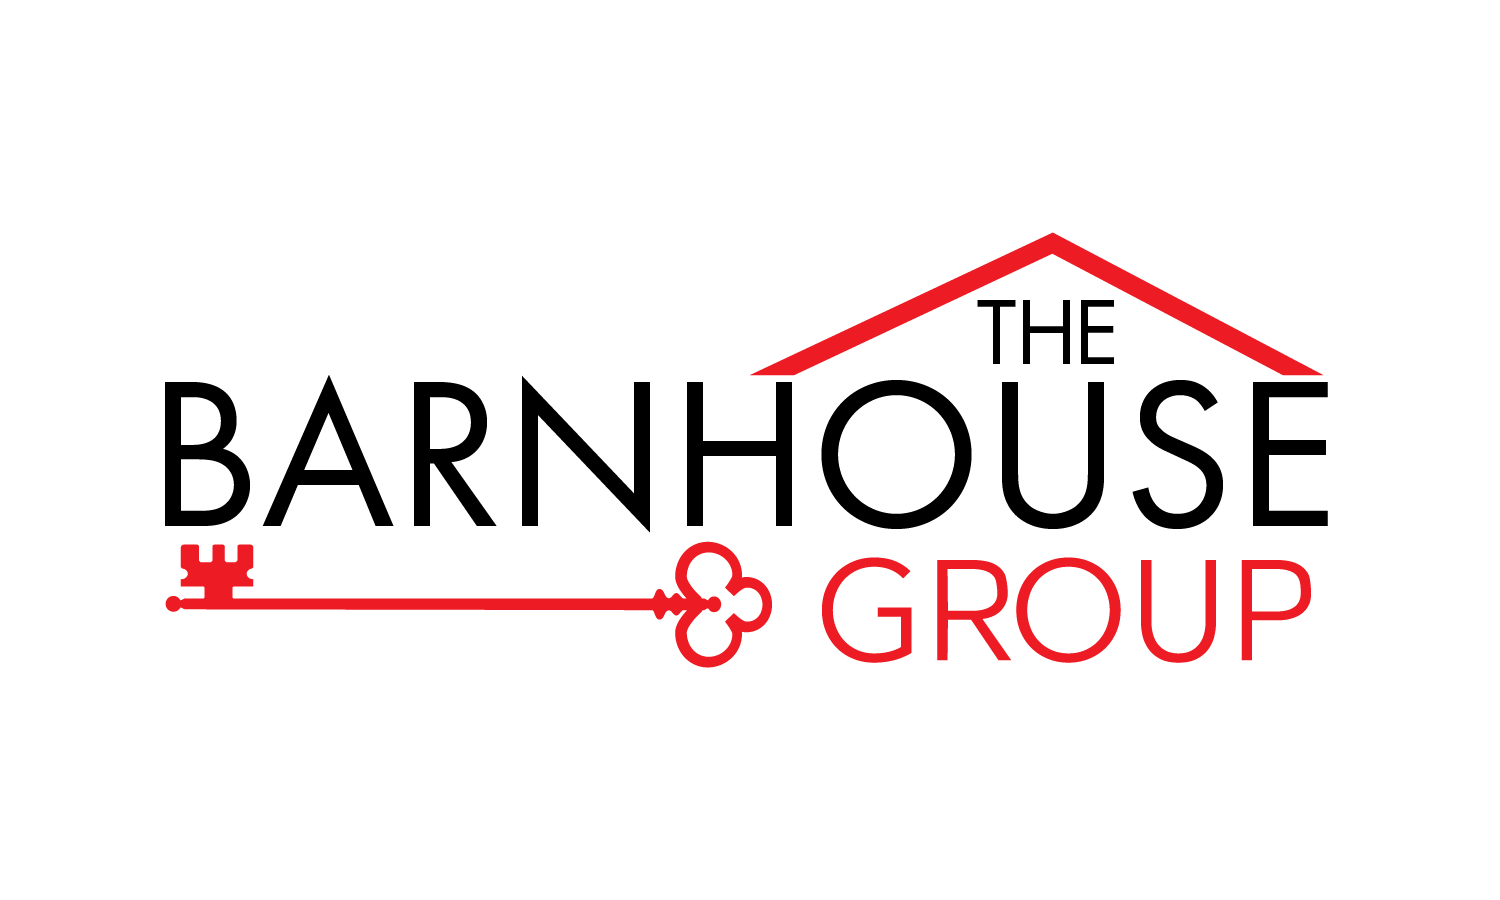 The Barnhouse Group